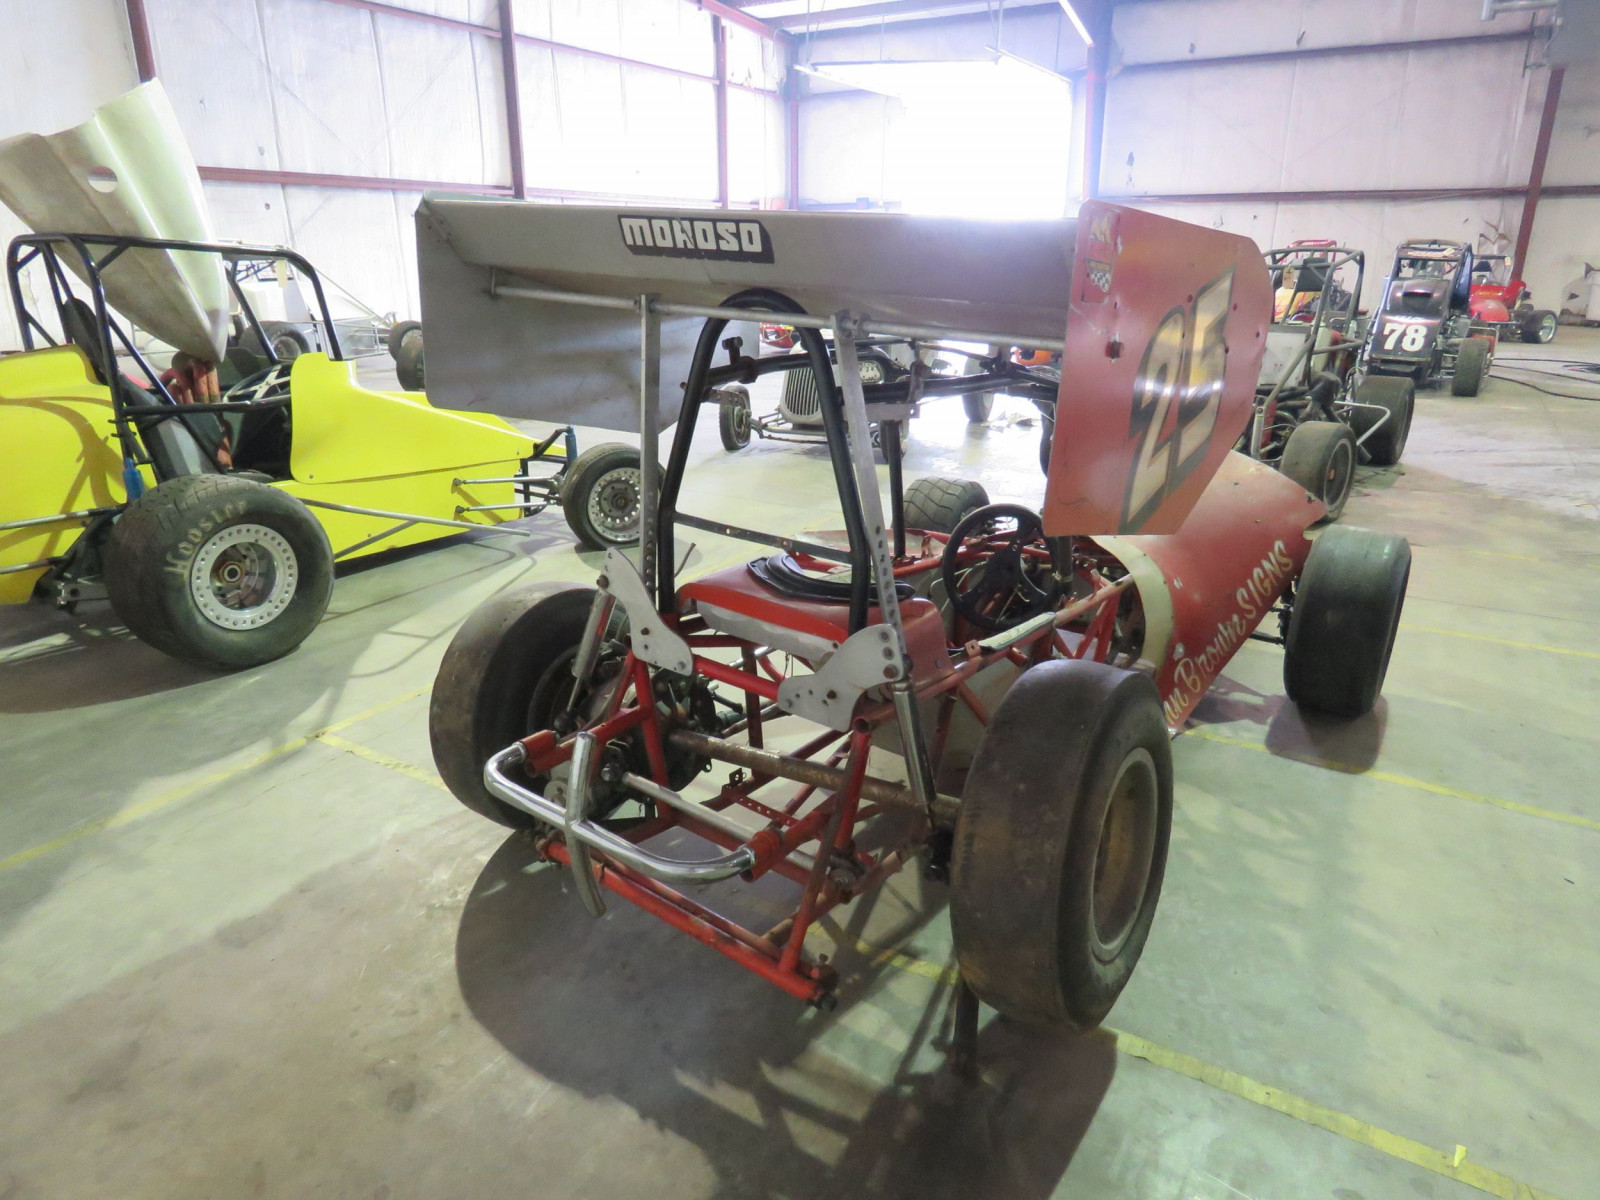 Vintage Edmunds Type Roadster Midget Race Car - Image 4